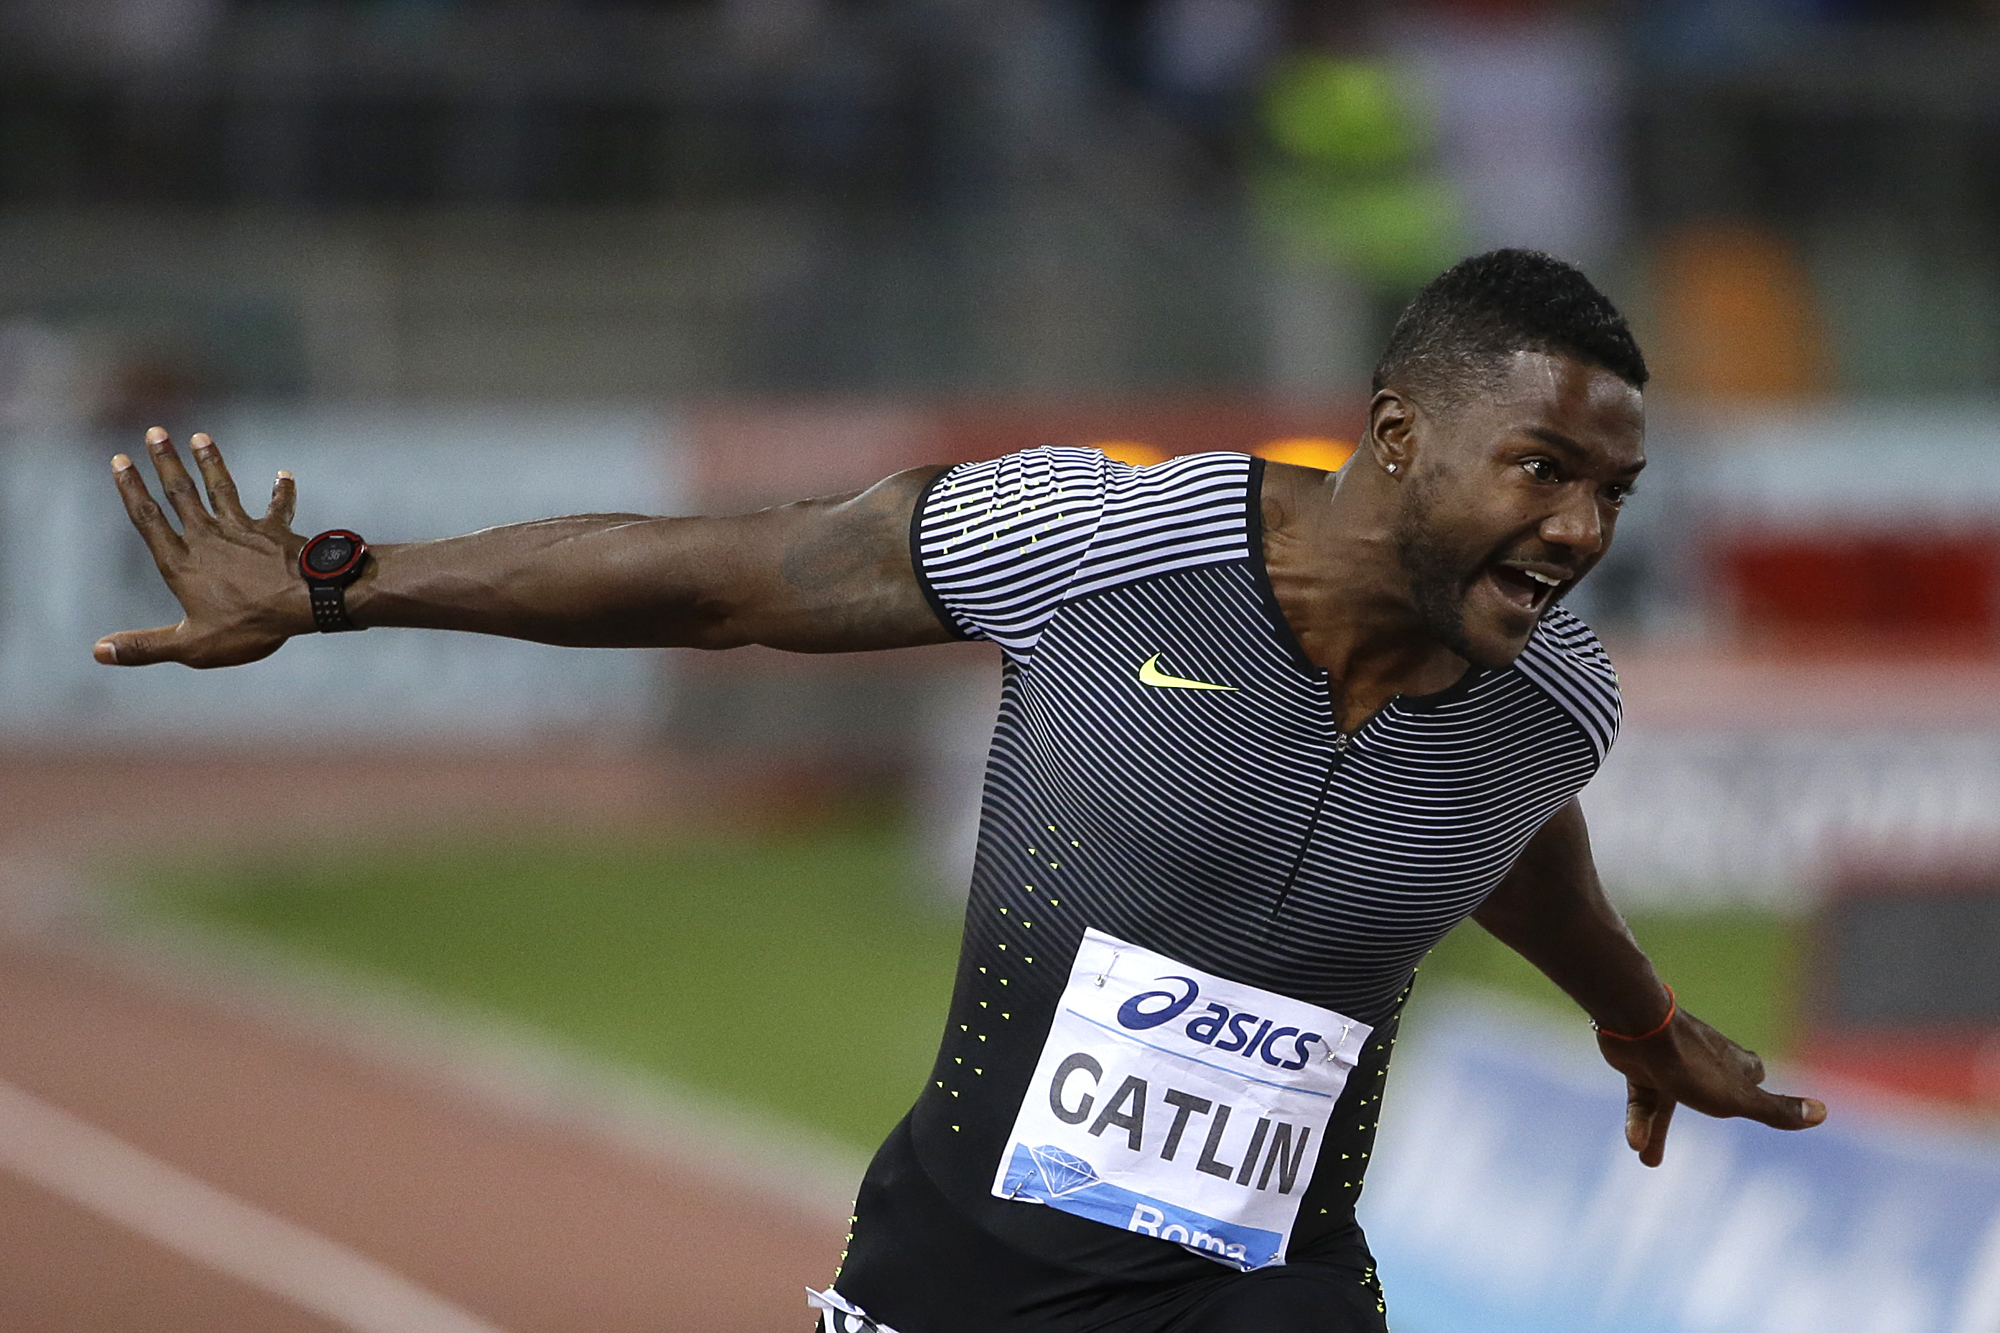 Justin Gatlin, of the United States, celebrates after winning the men's 100m event at the Golden Gala IAAF athletic meeting, in Rome's Olympic stadium, Thursday, June 2, 2016. (AP Photo/Gregorio Borgia)